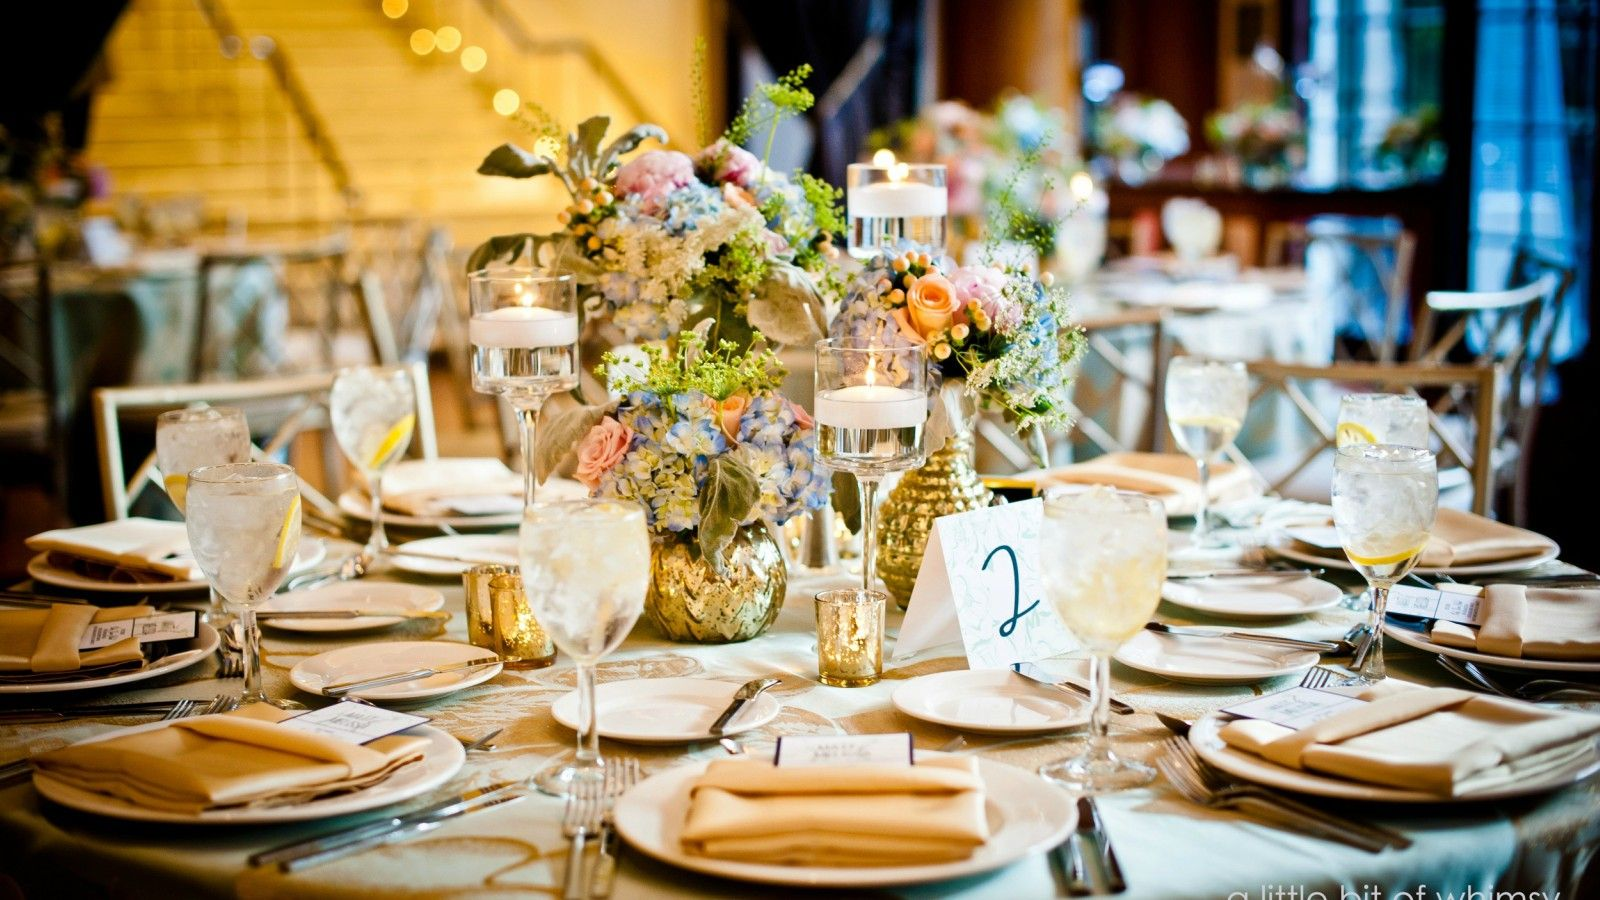 Georgetown Wedding Venue - The Westin Georgetown, Washington D.C.